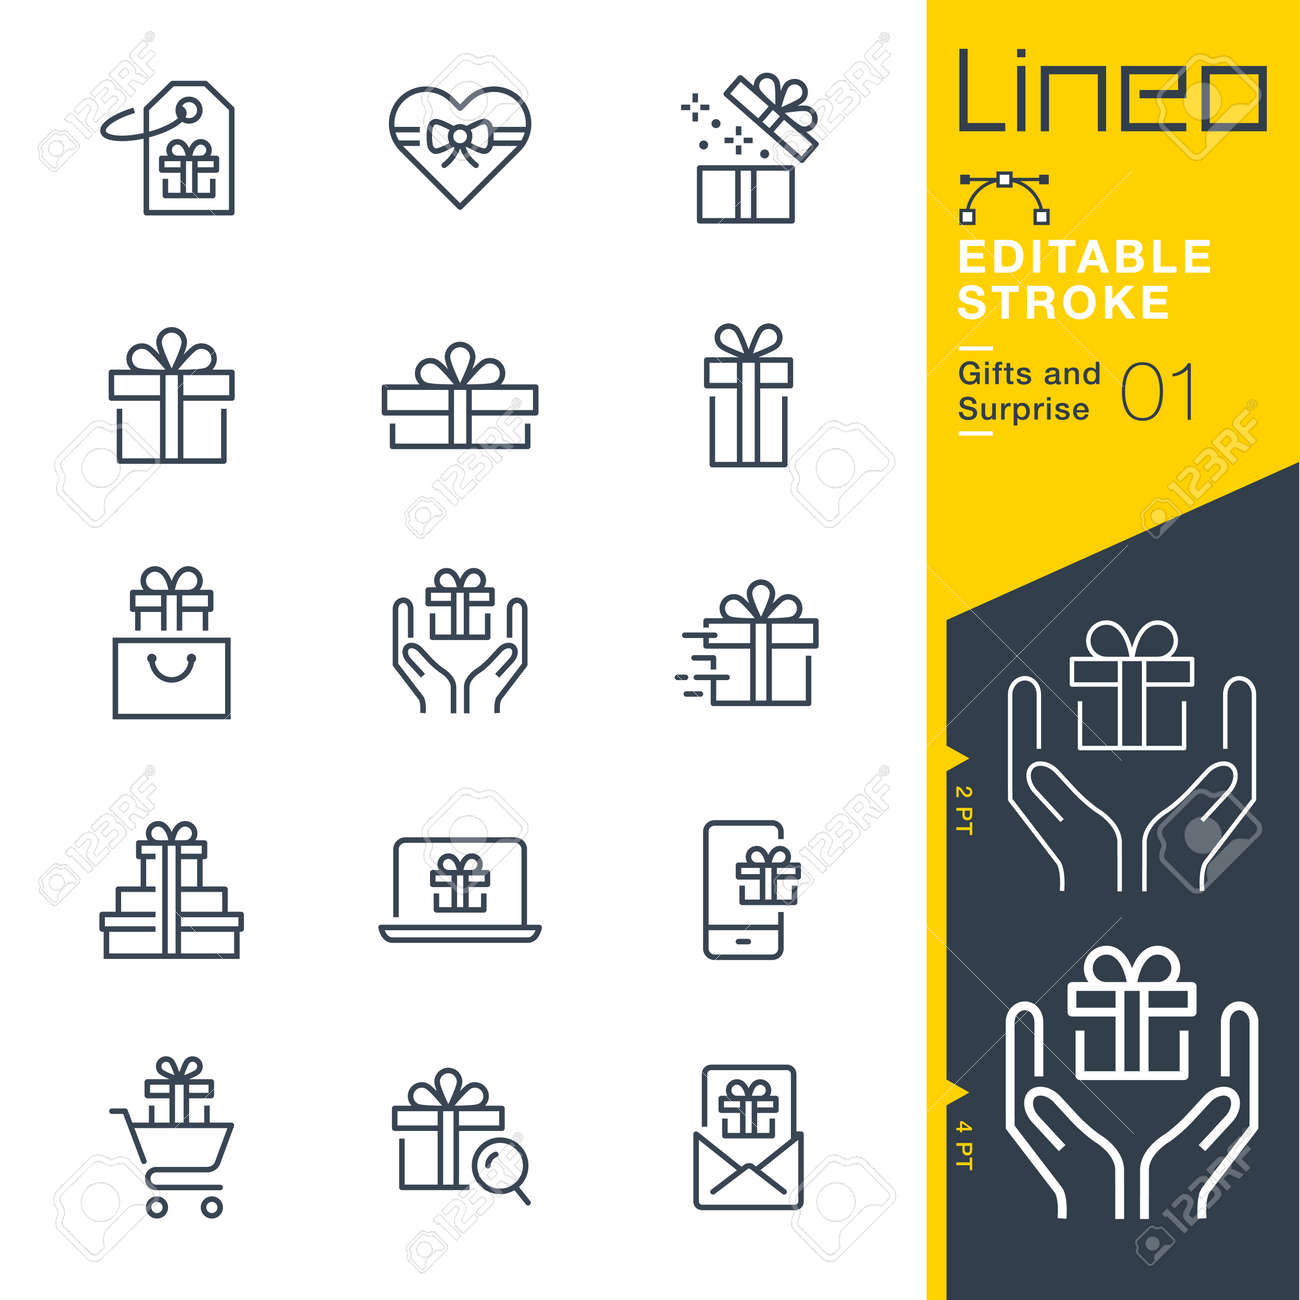 Lineo Editable Stroke. Gifts and surprise line icon vector icons. Adjust stroke weight. Change to any color - 87729299